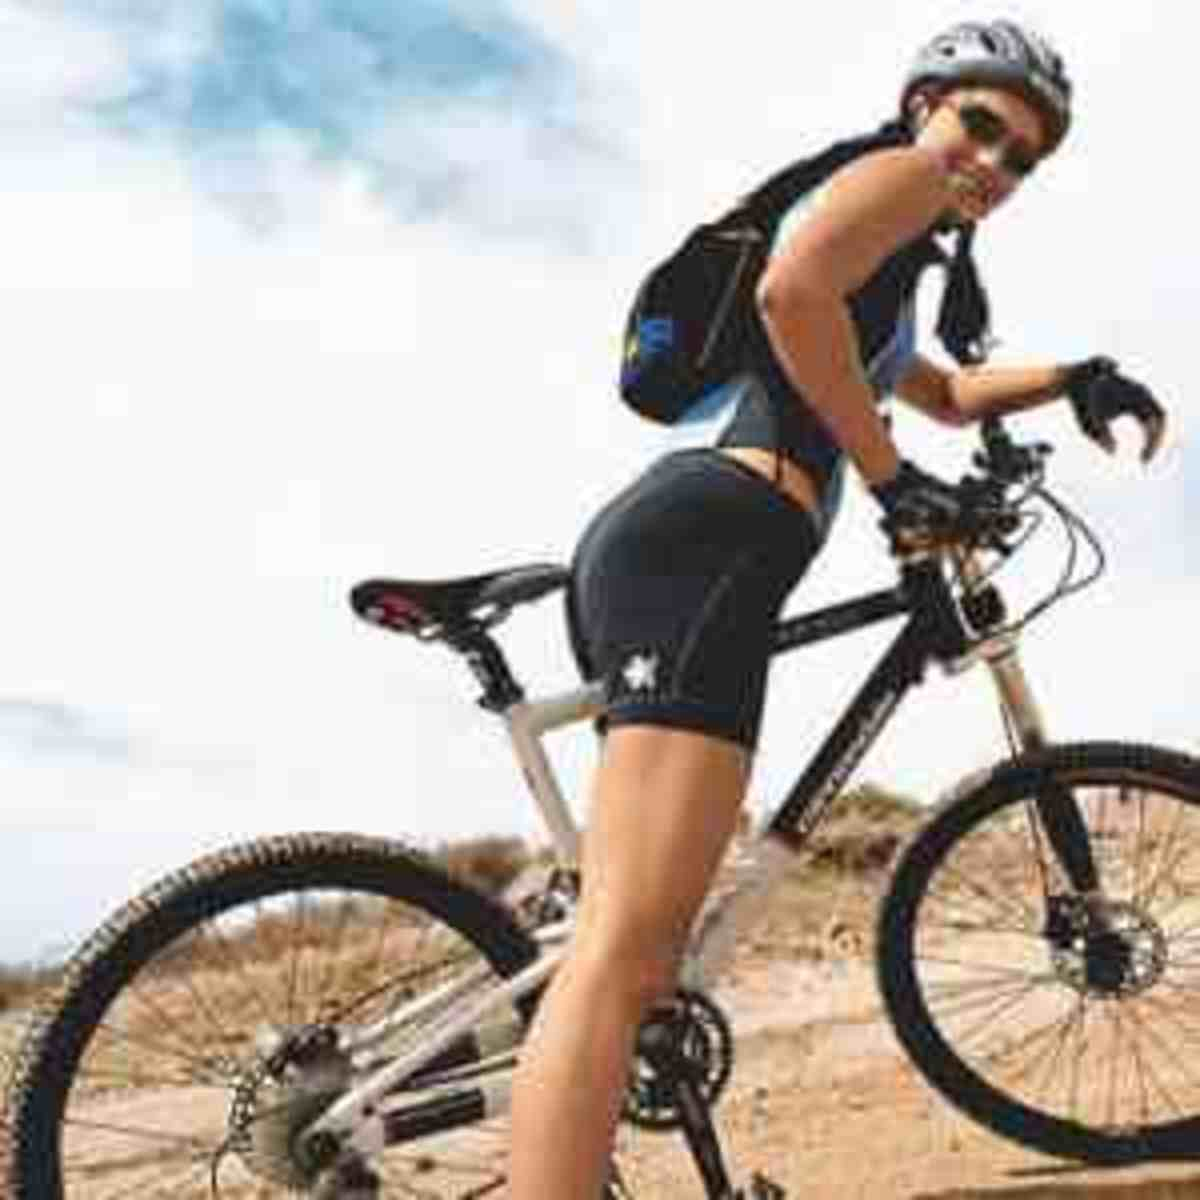 Ways to lose weight riding a bike